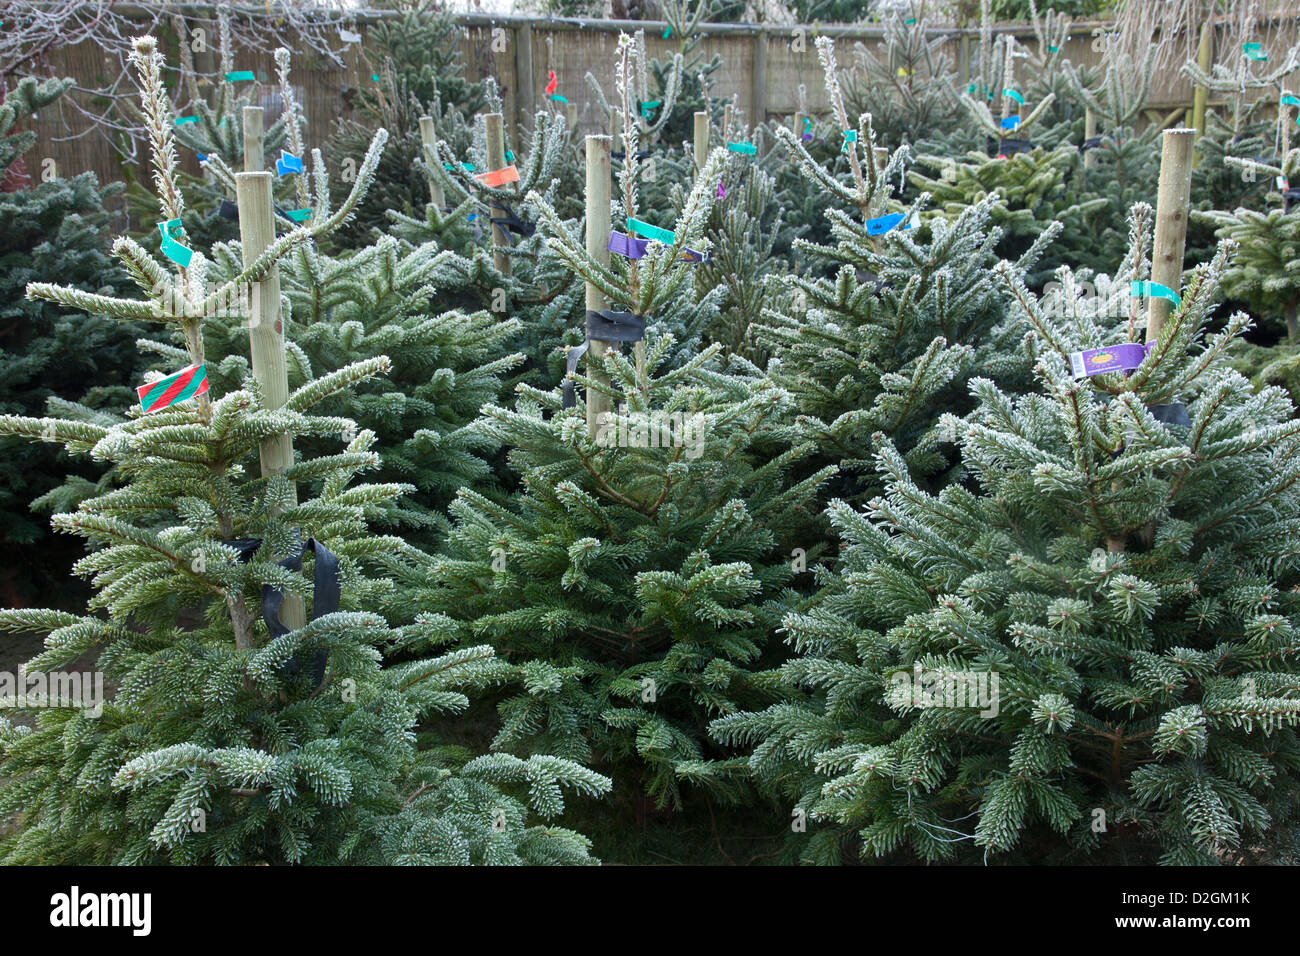 Christmas Trees For Sale.Frost On Conifer Christmas Trees Awaiting Sale In Garden